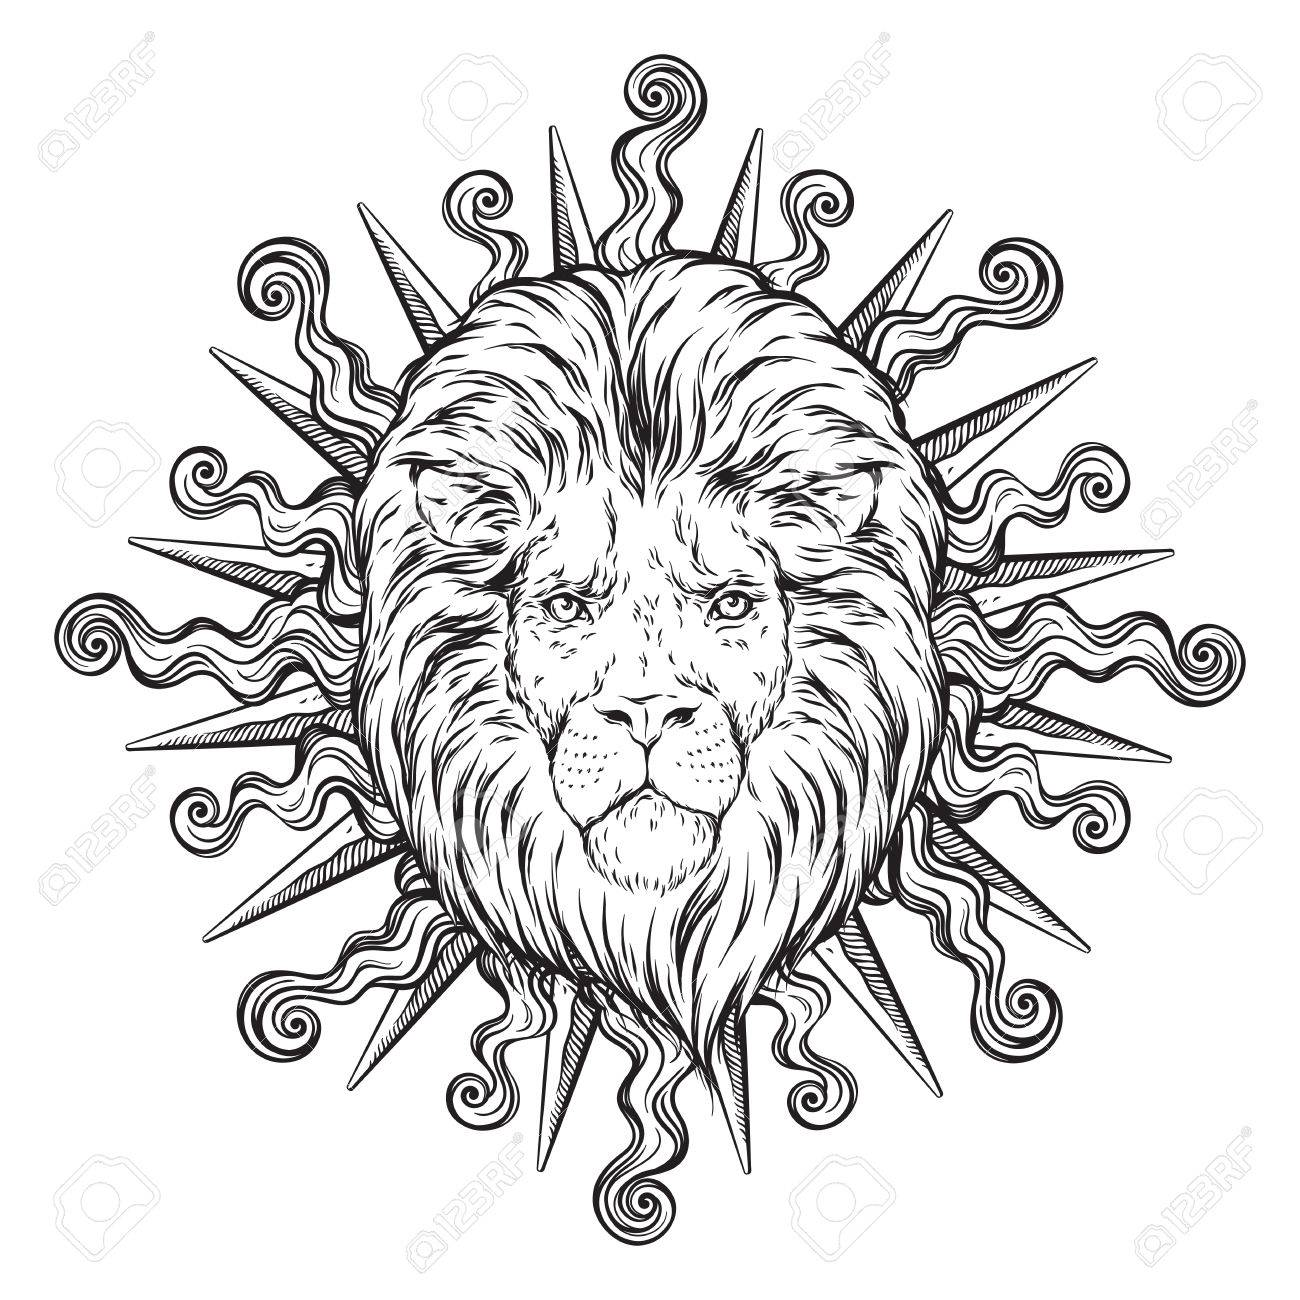 1300x1300 Hand Drawn Lion Head Isolated Vector Illustration. Flash Tattoo